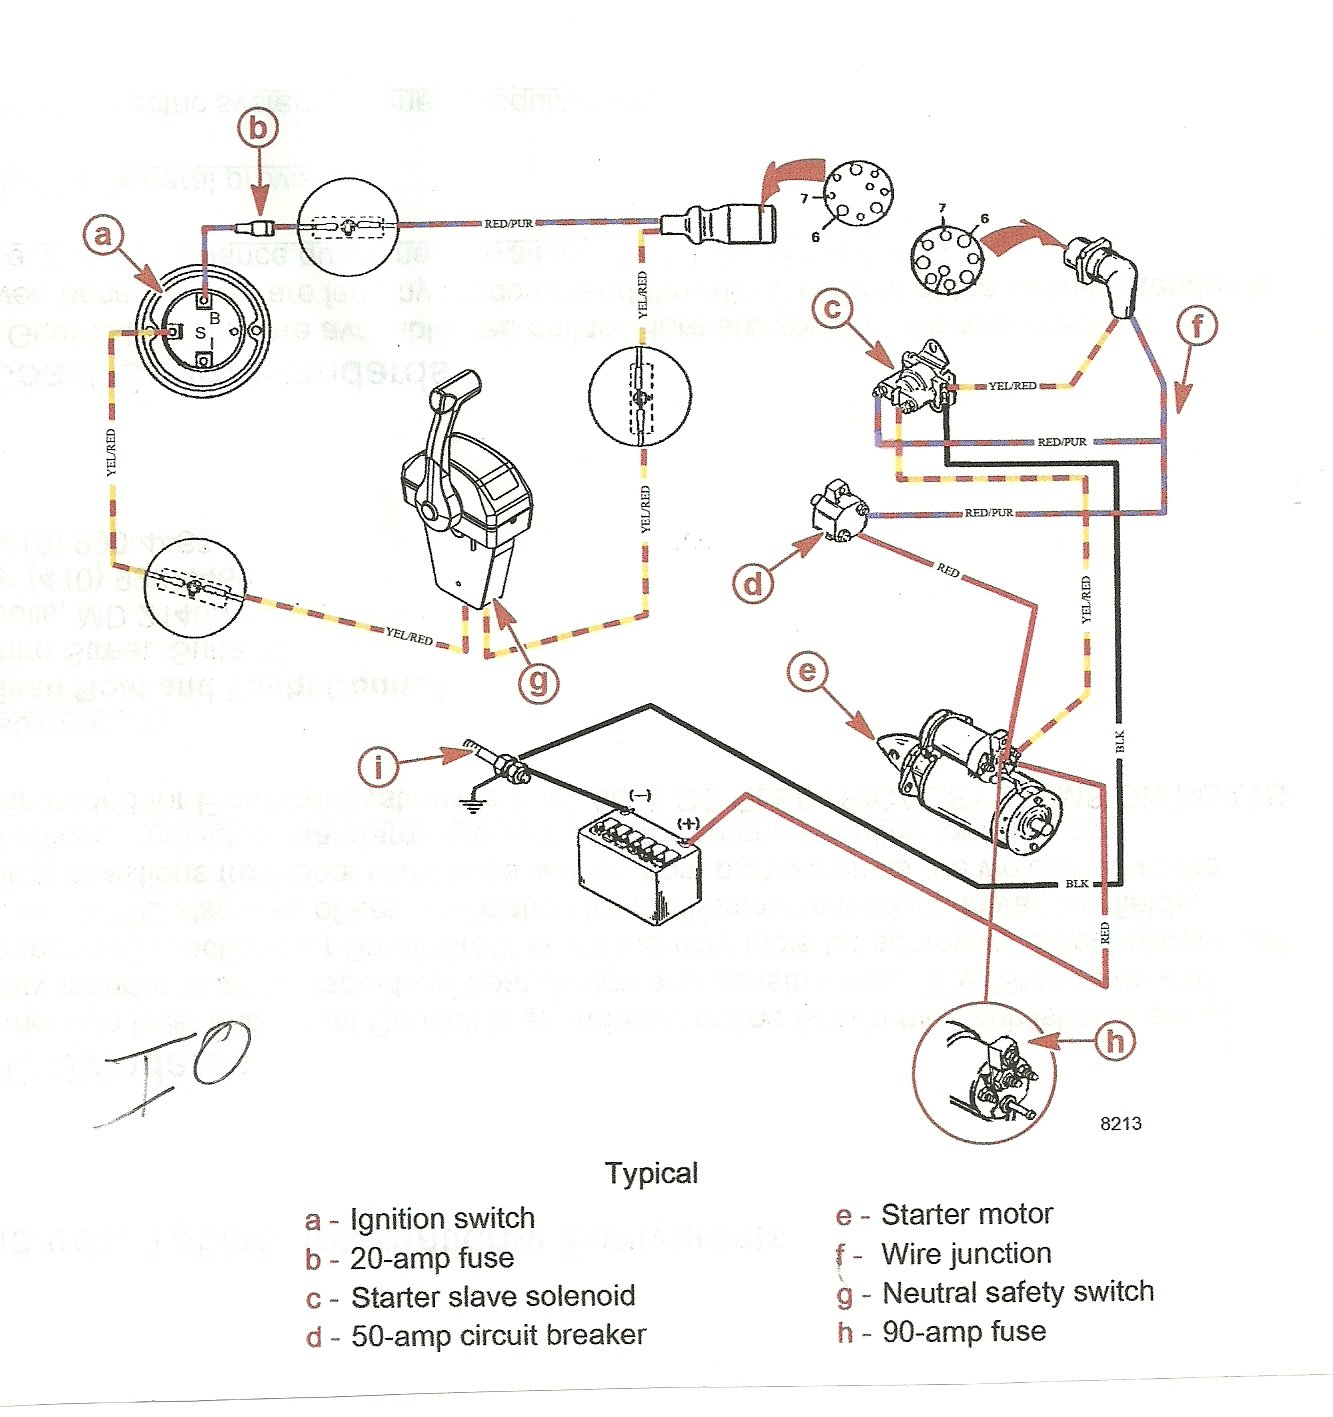 got mercruiser had lots of problems fitted new starter new ... mercruiser ignition switch wiring diagram